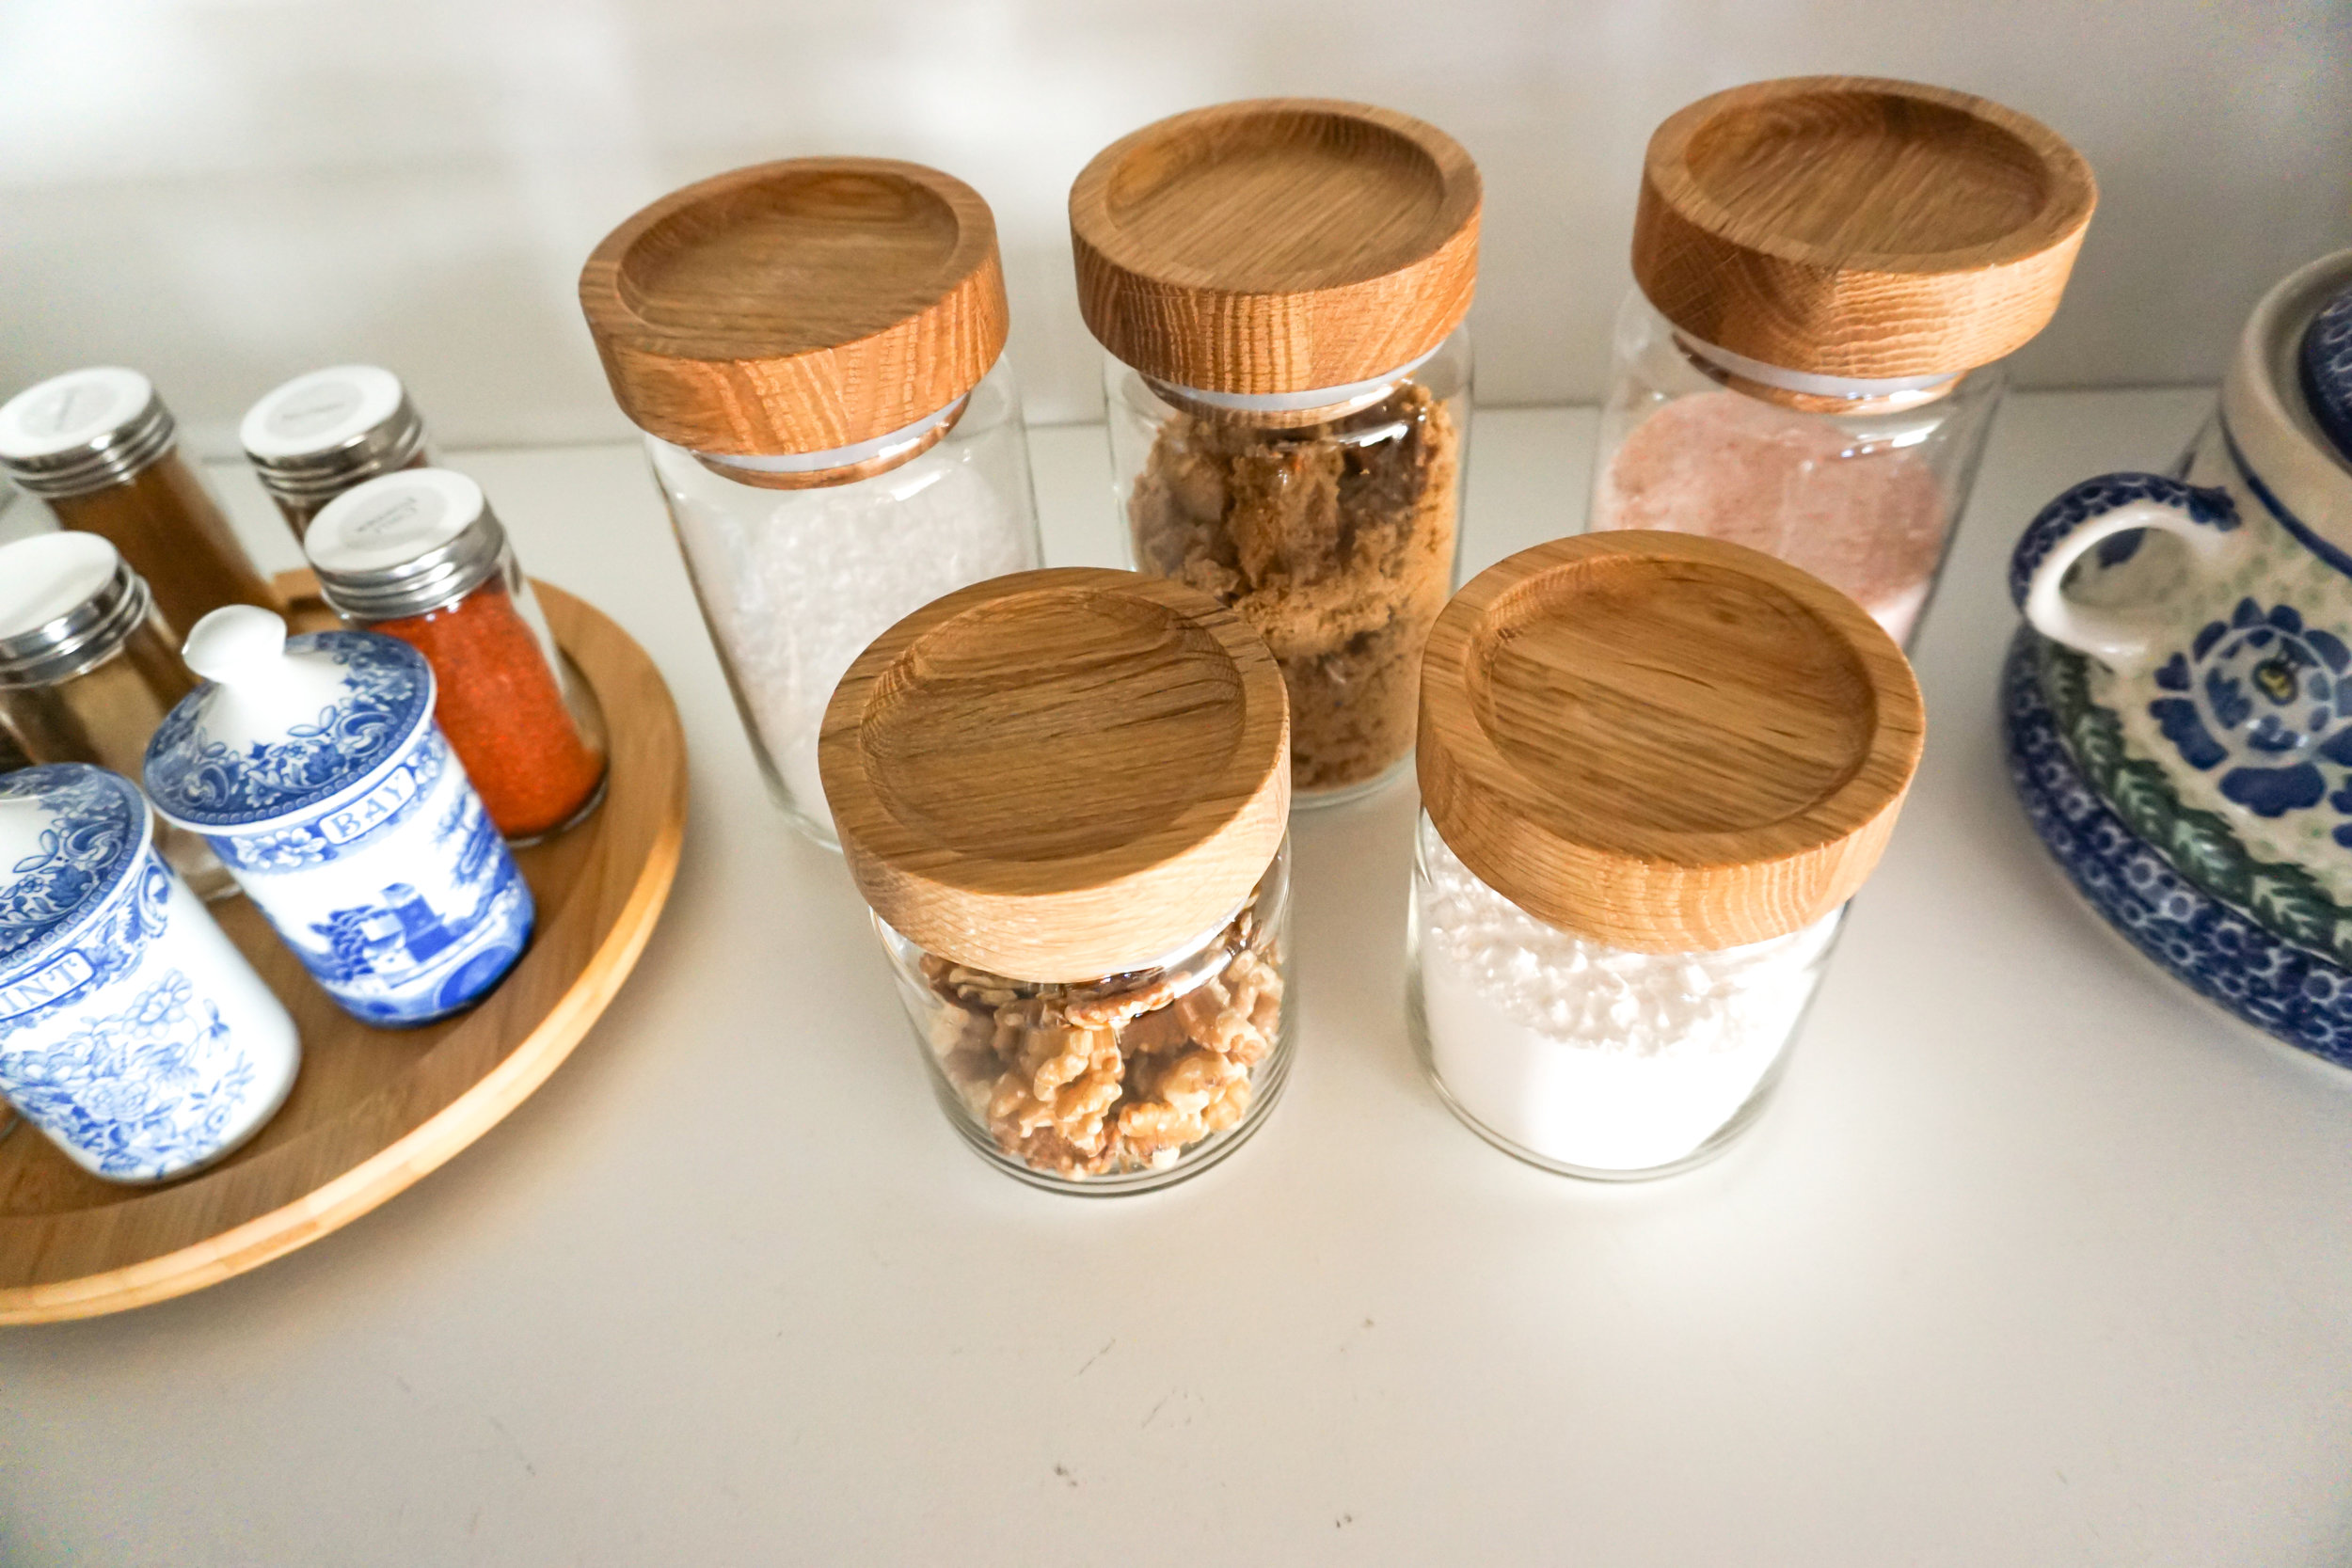 House of Turk | Spice Jar and Baking Storage